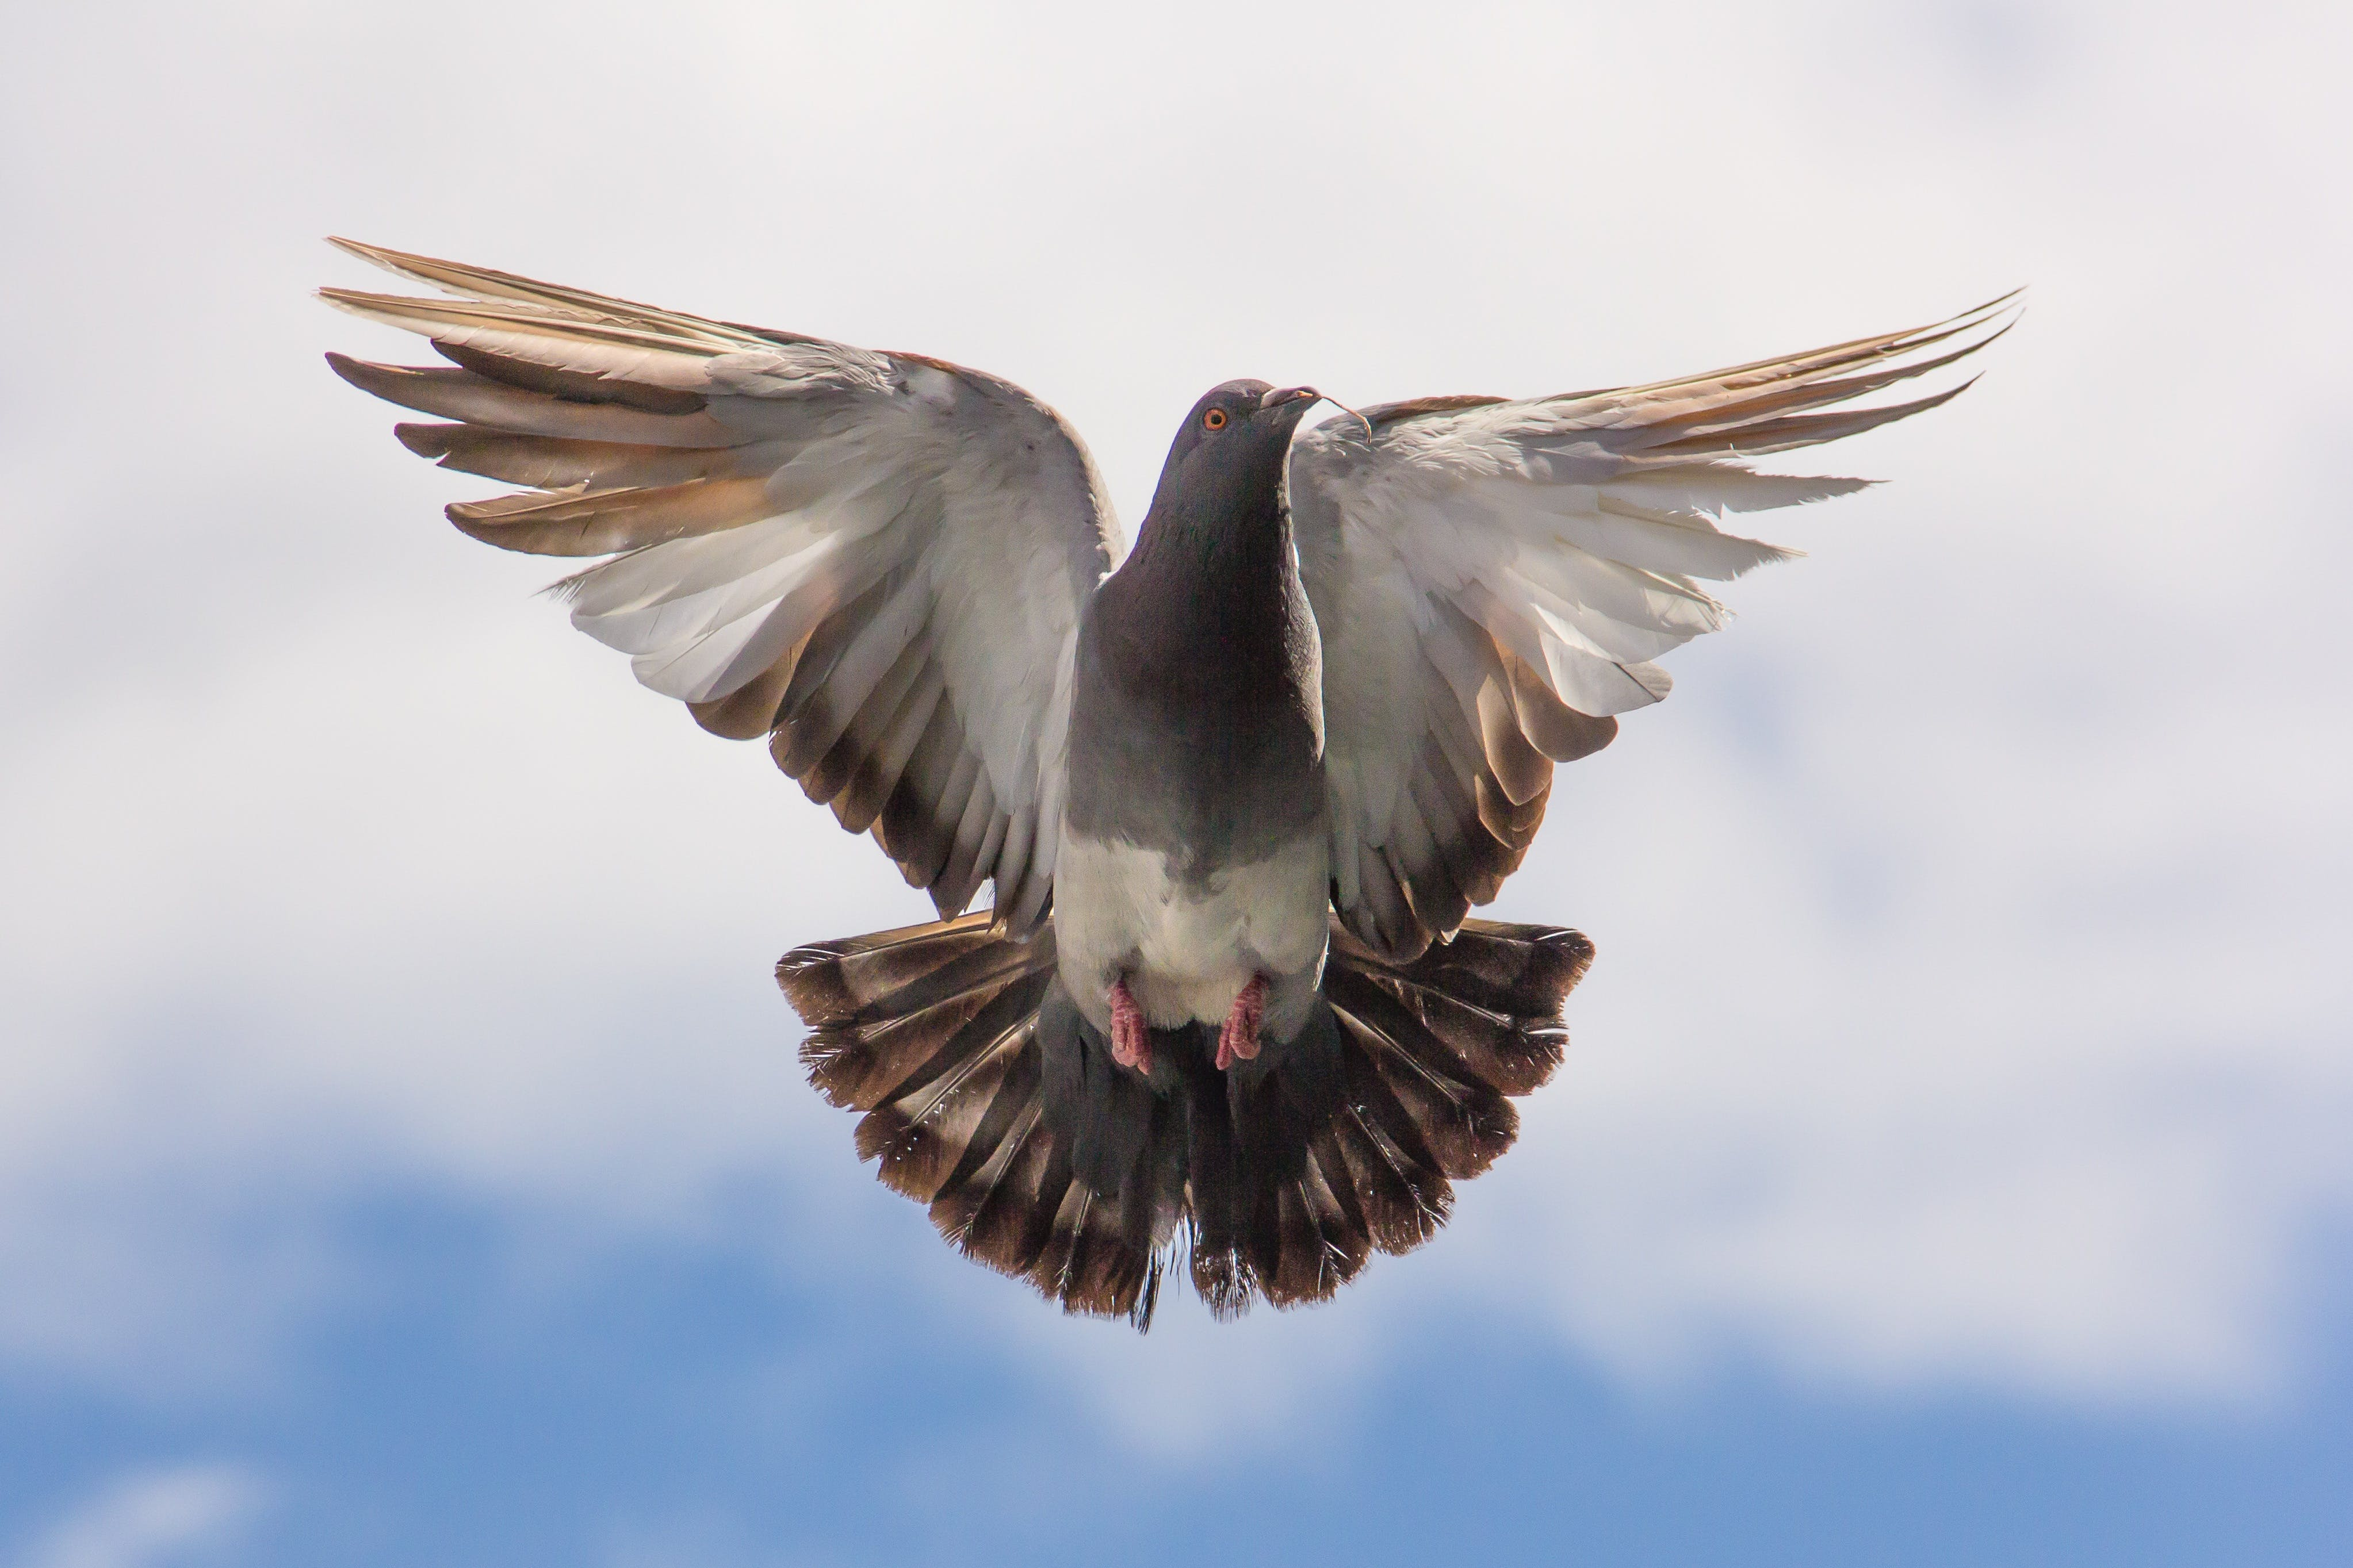 Brown and White Flying Bird on Blue Sky